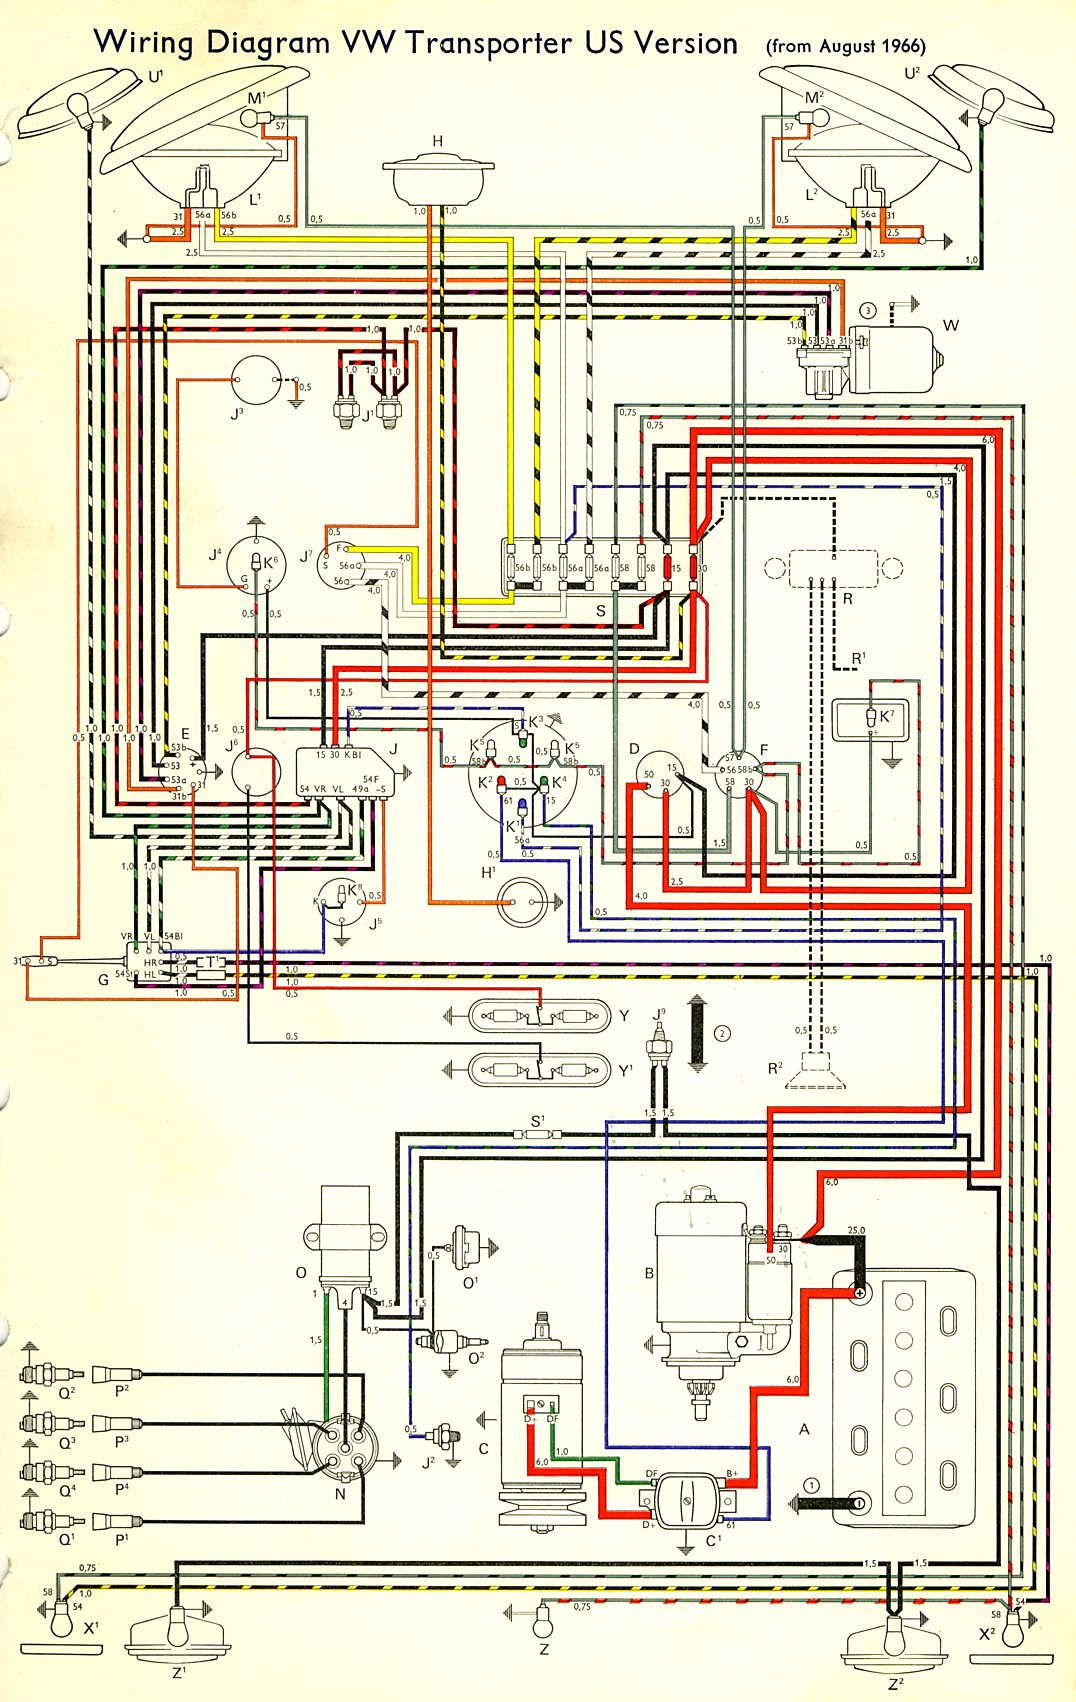 bus_67_USA 67 vw bus wiring diagram pdf 1957 vw wiring diagram \u2022 wiring  at gsmx.co